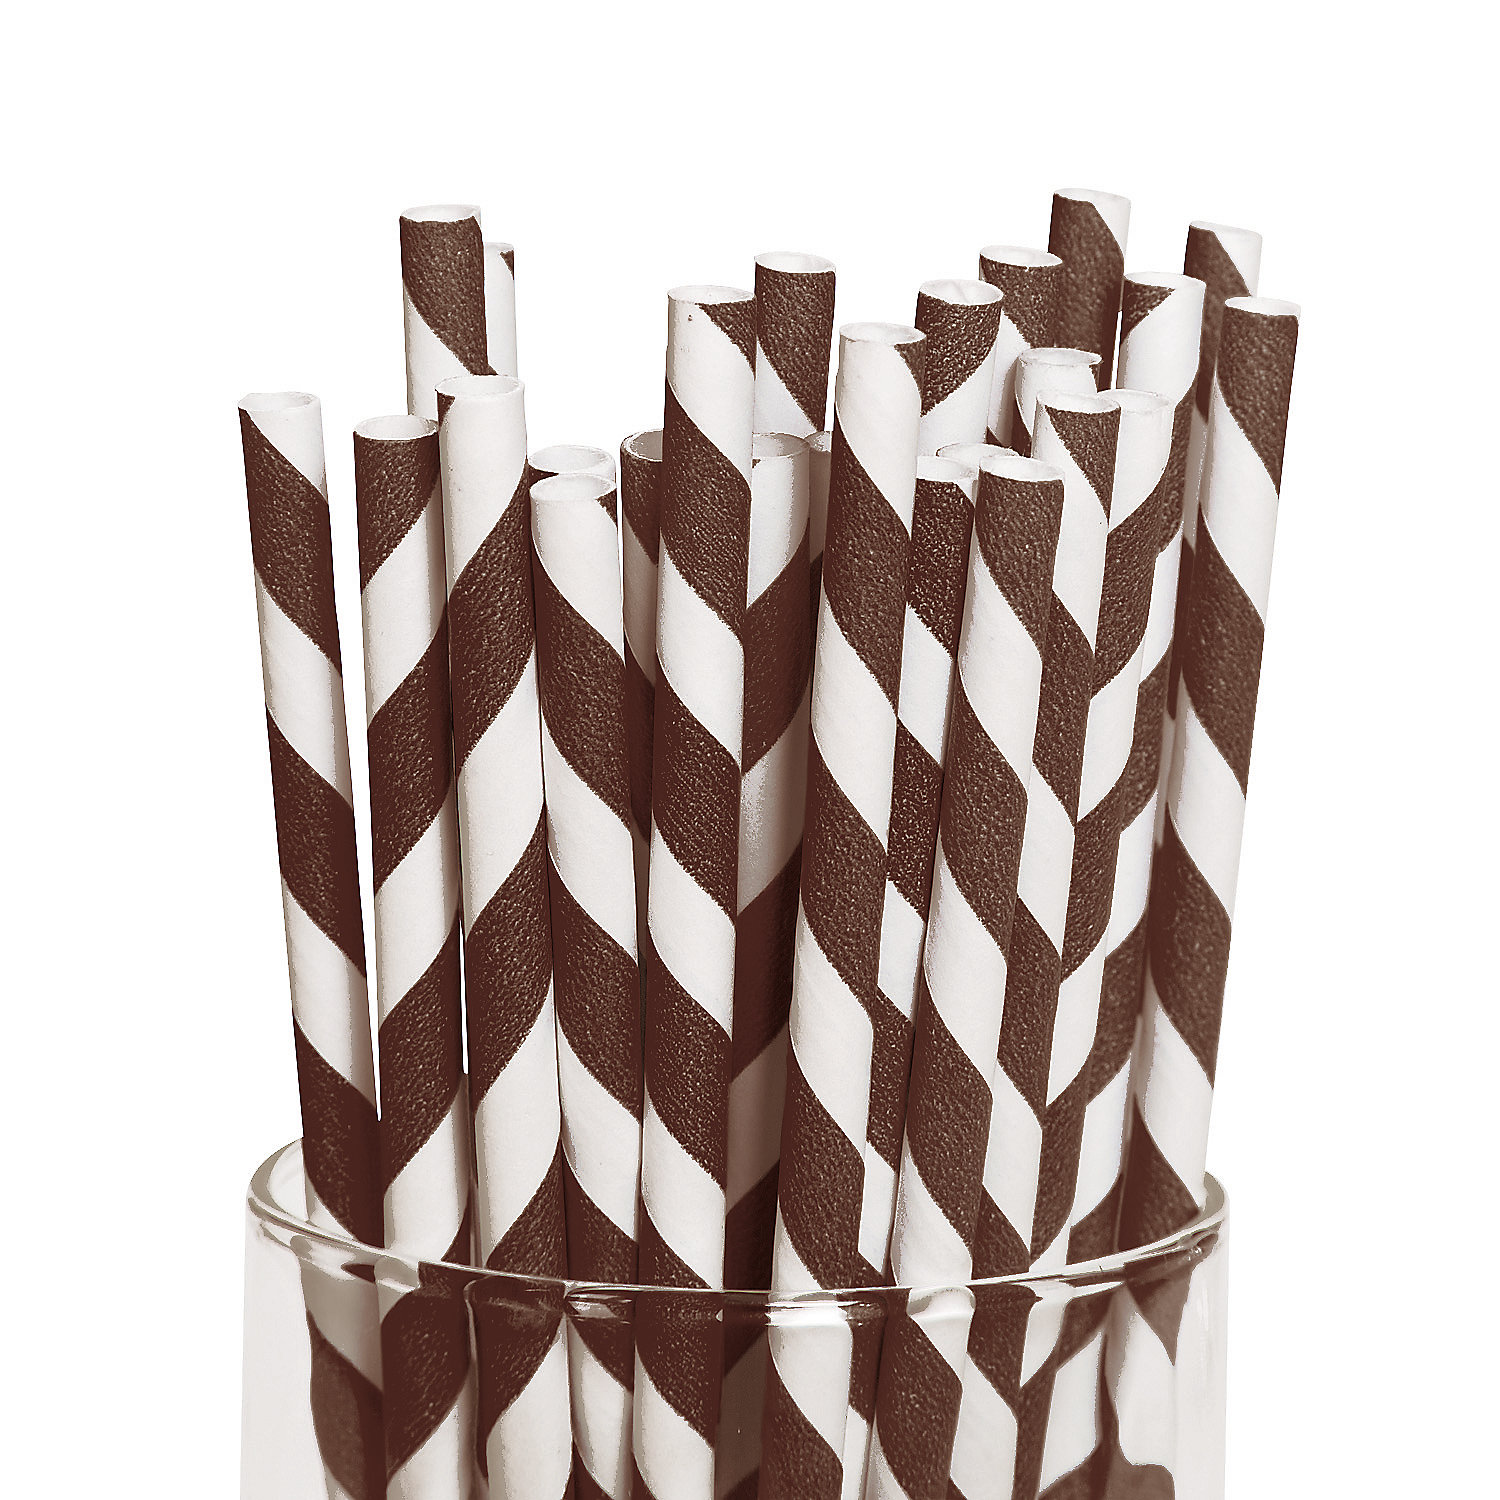 IN-13617380 Brown Striped Paper Straws 24 Piece(s)